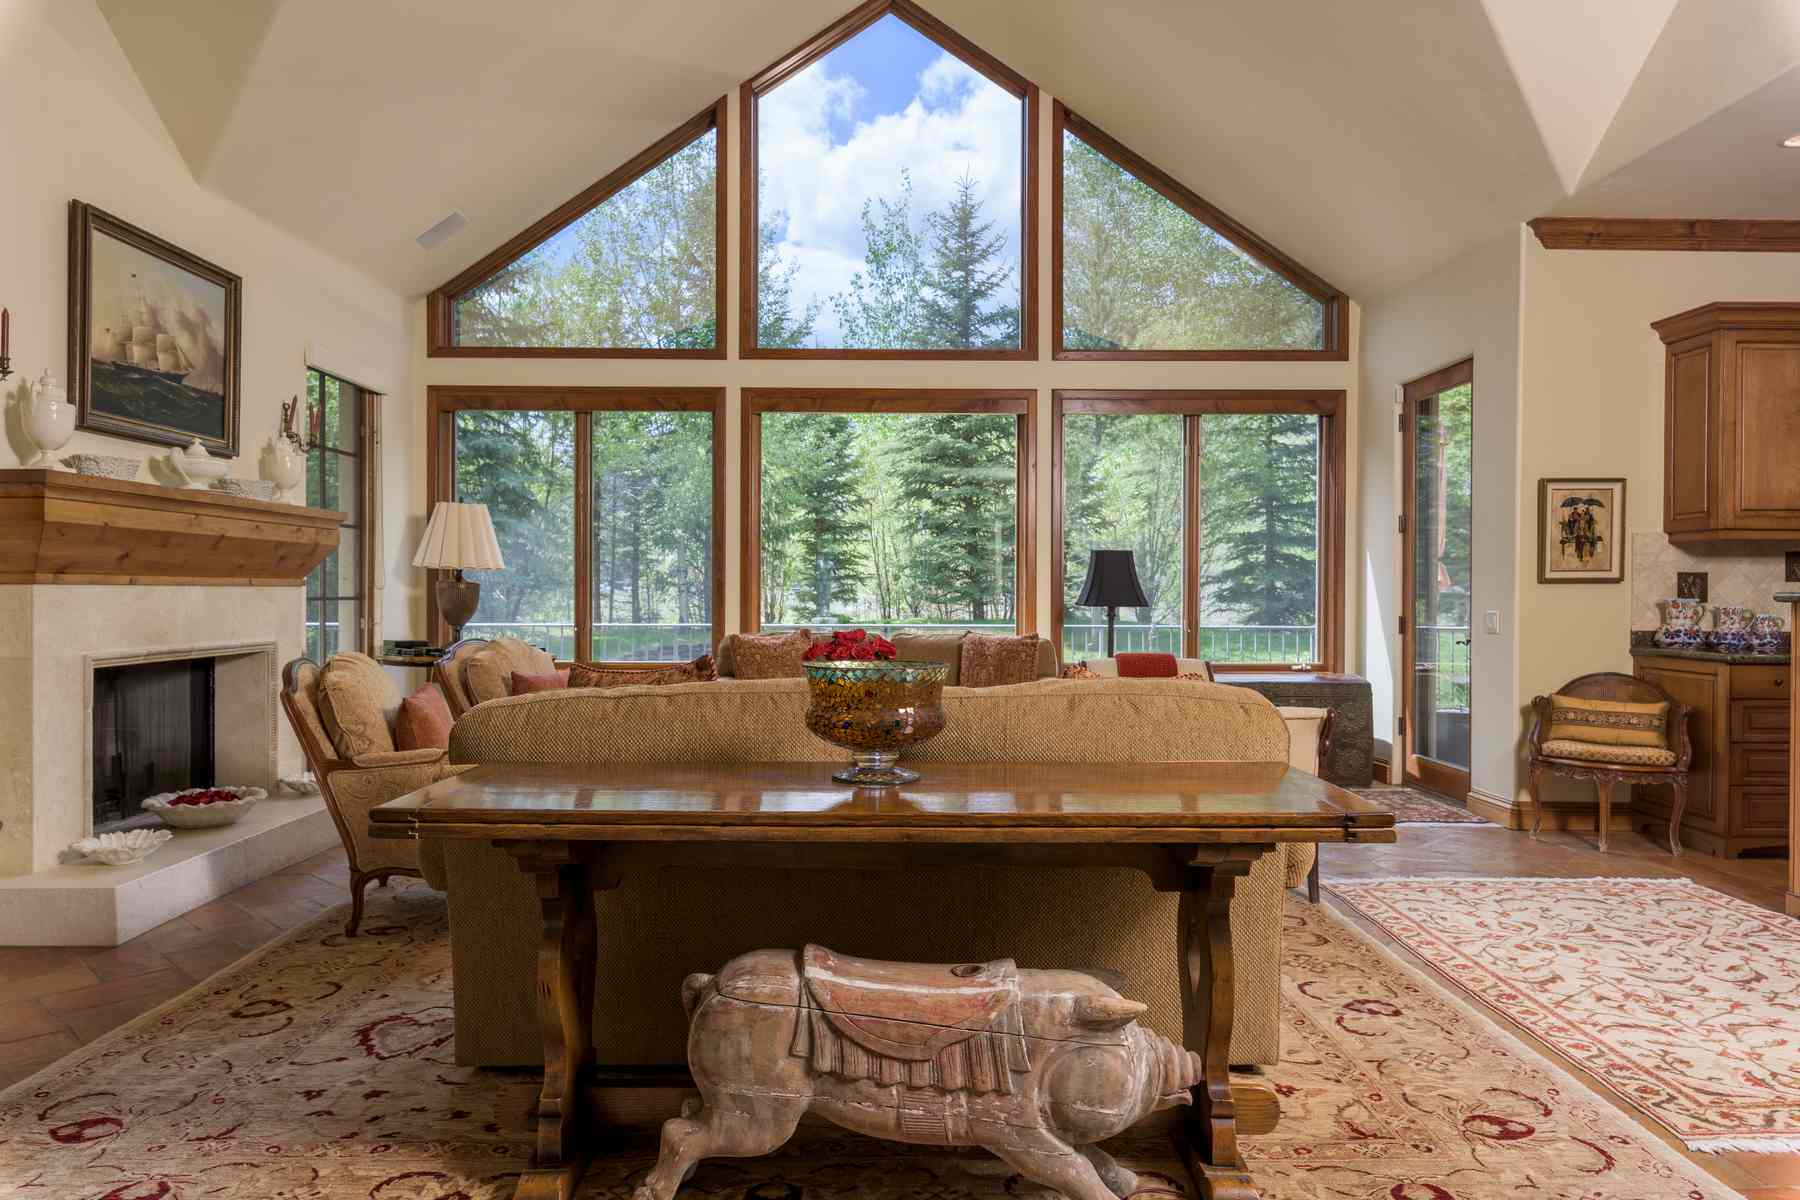 Single Family Home for Sale at Rarely Available Estate Caliber Home 1100 W Canyon Run Blvd. Ketchum, Idaho 83340 United States